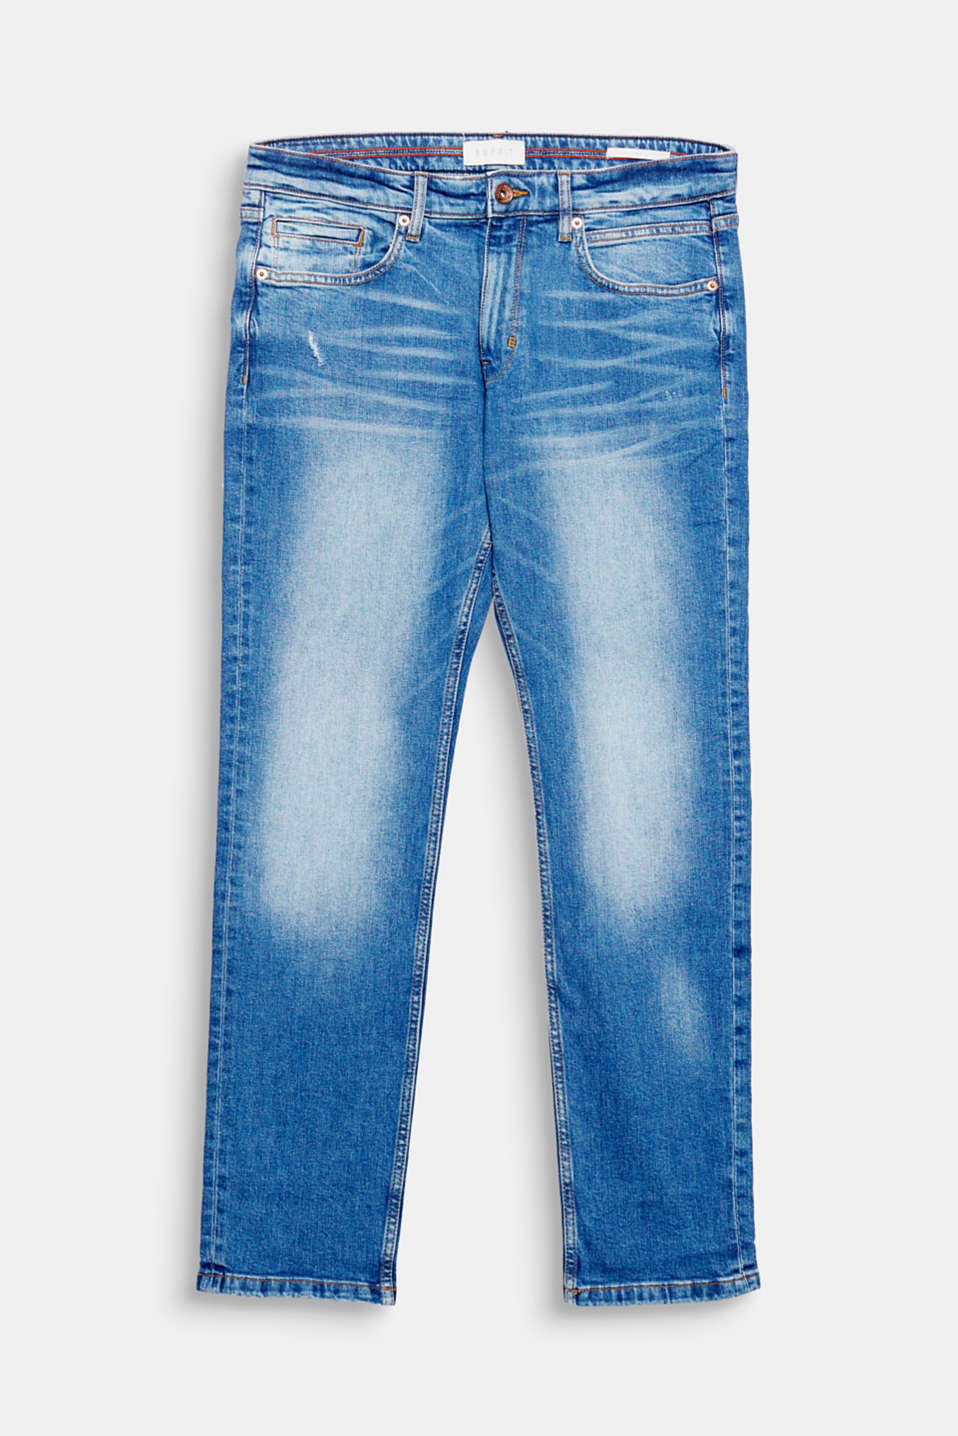 We love authentic denim! Deze jeans overtuigt door de opvallende used details en de stone wash.